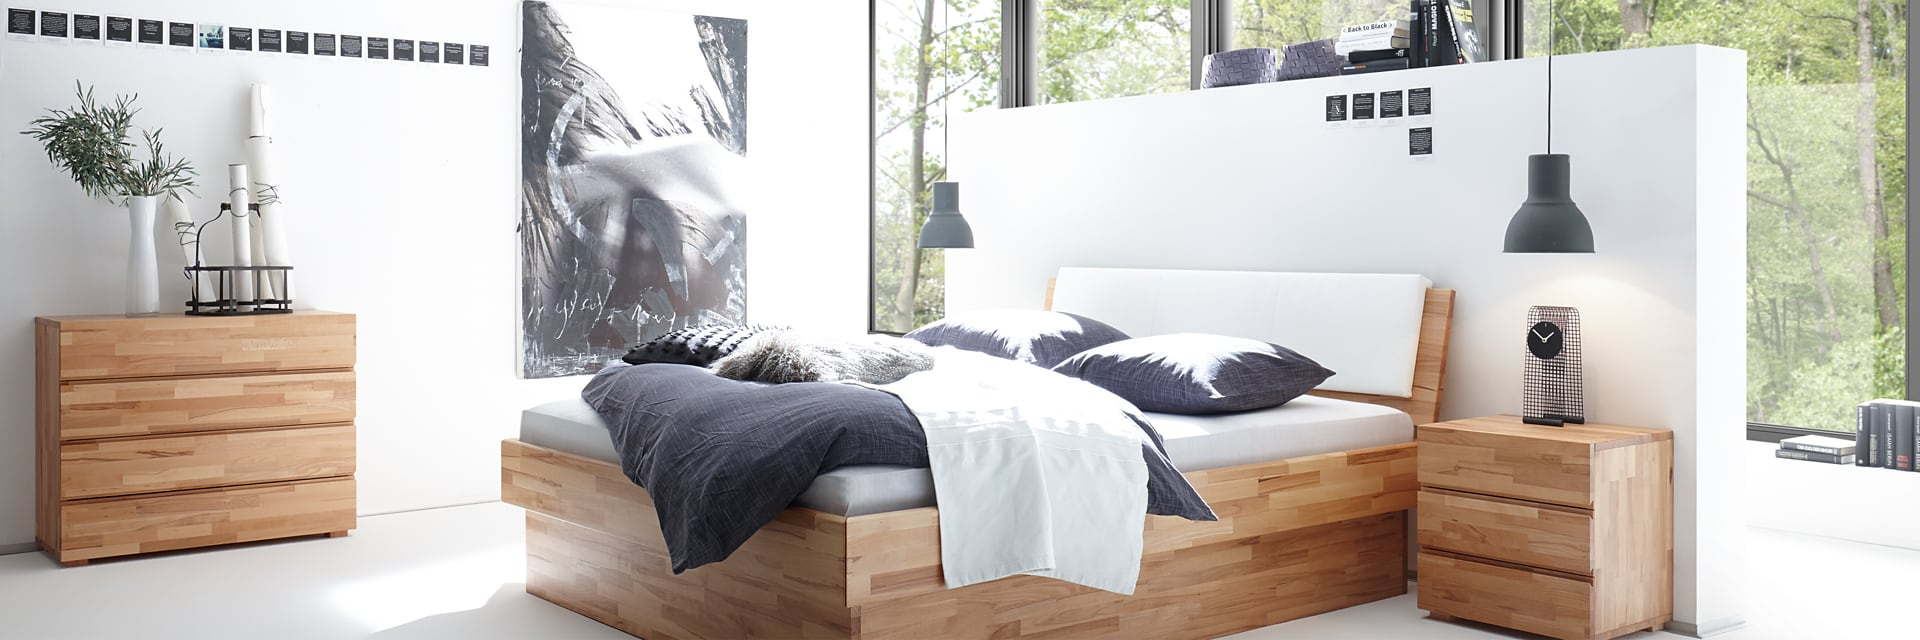 betten fachgesch ft betten meyer olpe lennestadt. Black Bedroom Furniture Sets. Home Design Ideas